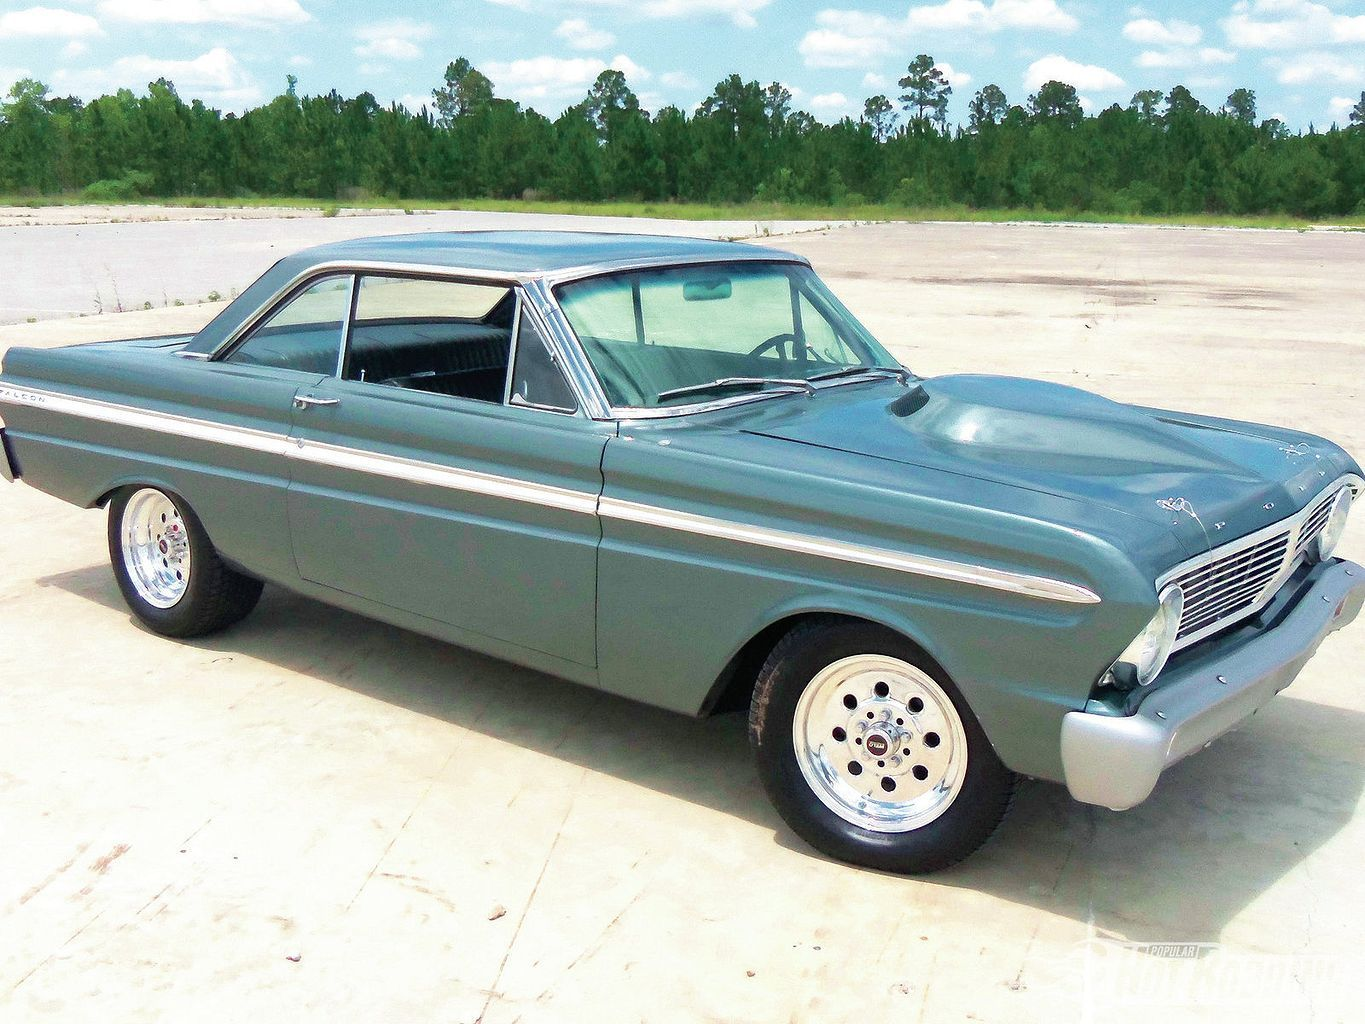 1961 ford falcon for sale racingjunk classifieds - Ford Maverick Wagon Mcmaverick Pinterest Ford Maverick Ford And Ford Pinto